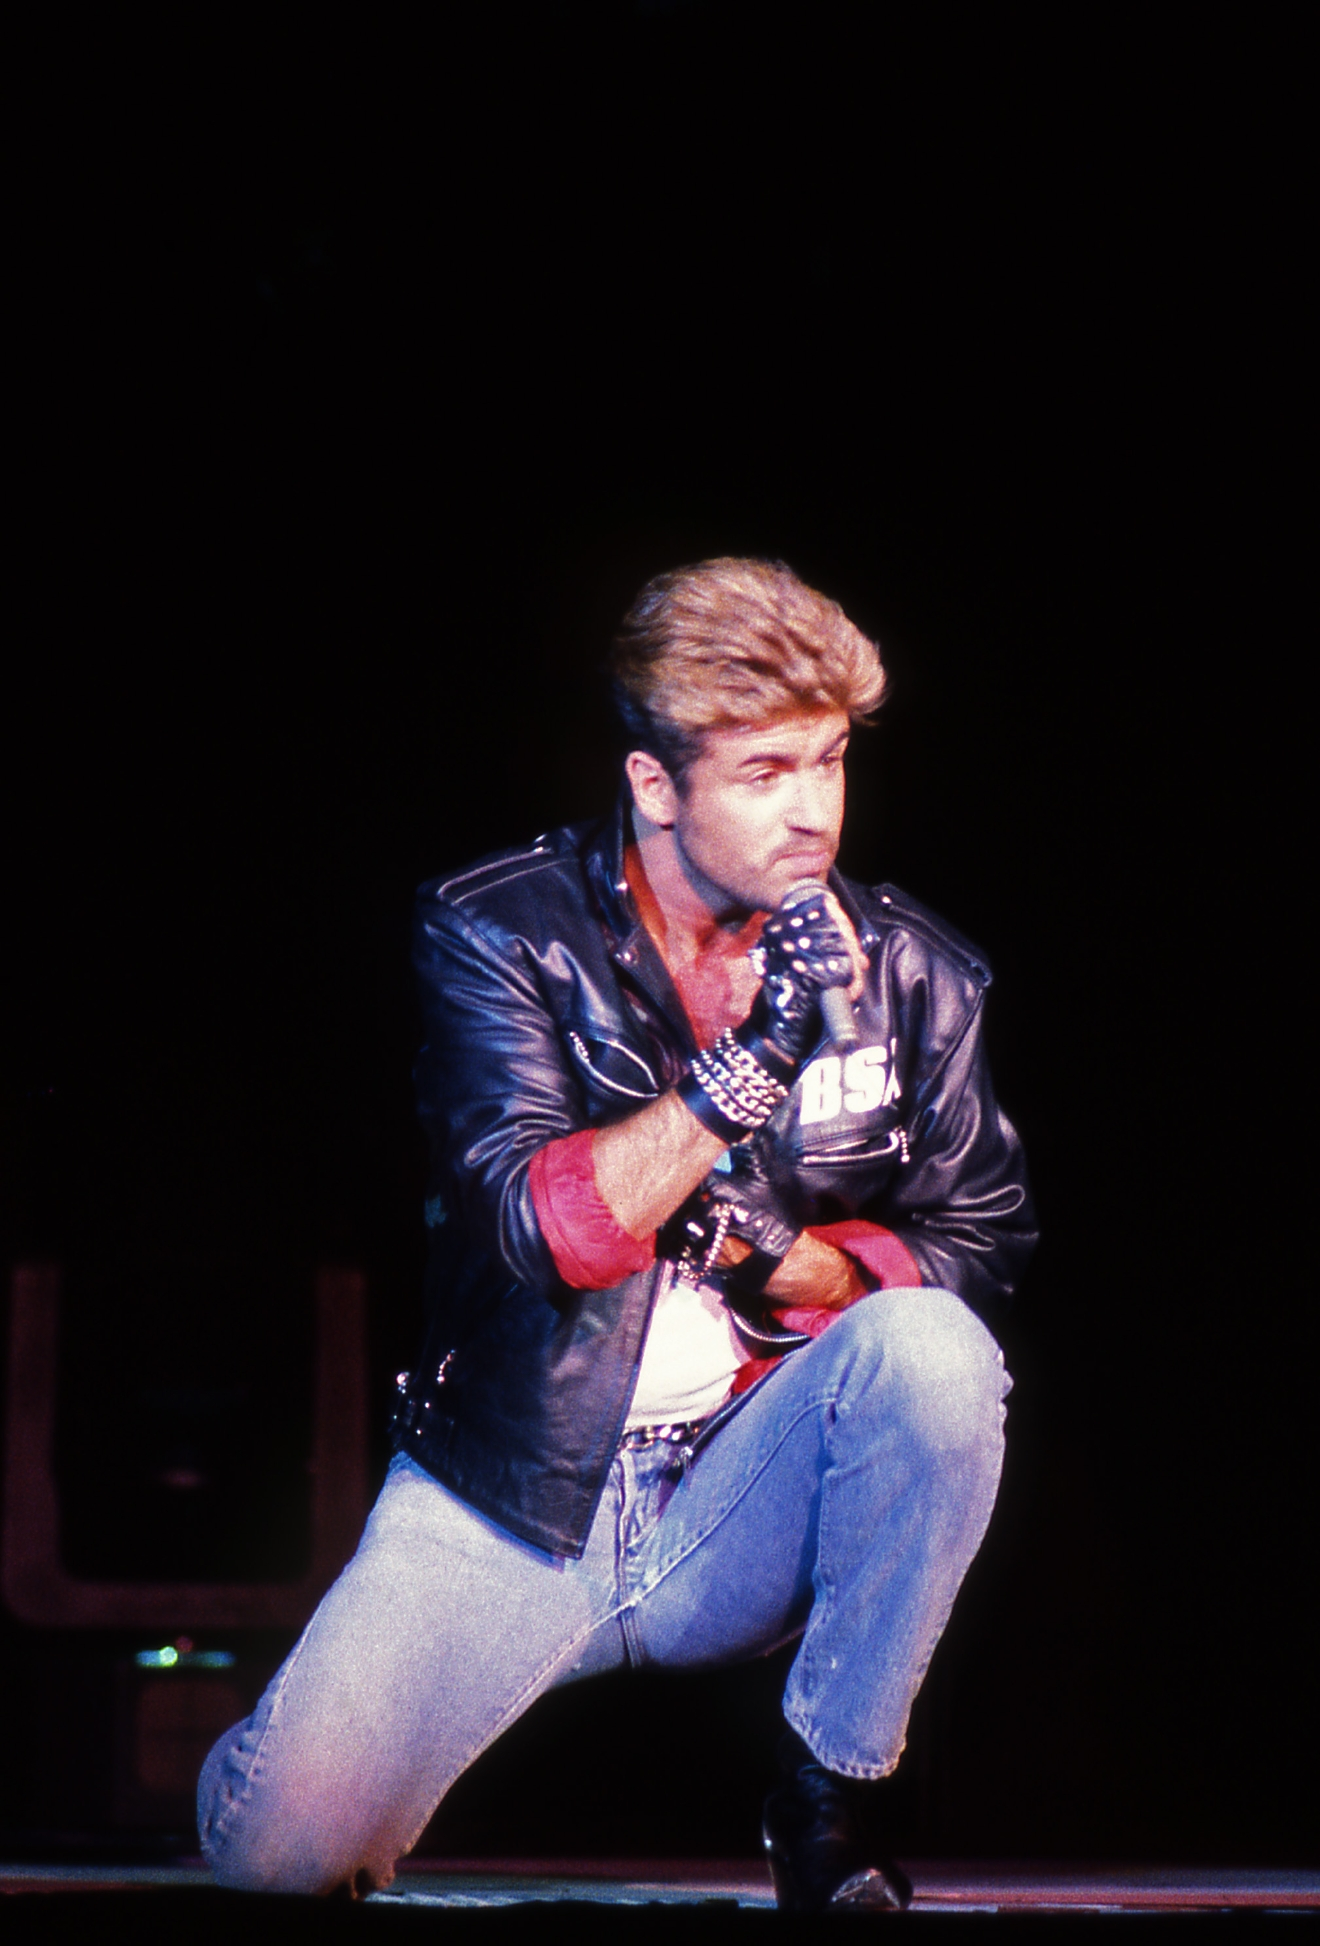 George Michael - performing live on opening night of the Faith Tour at the Budokan in Tokyo Japan - 19 Feb 1988.  Photo credit: George Chin/IconicPix  Where: London, United Kingdom When: 19 Feb 1988 Credit: George Chin//IconicPix/WENN.com  **Only available for publication in UK, USA, Germany**